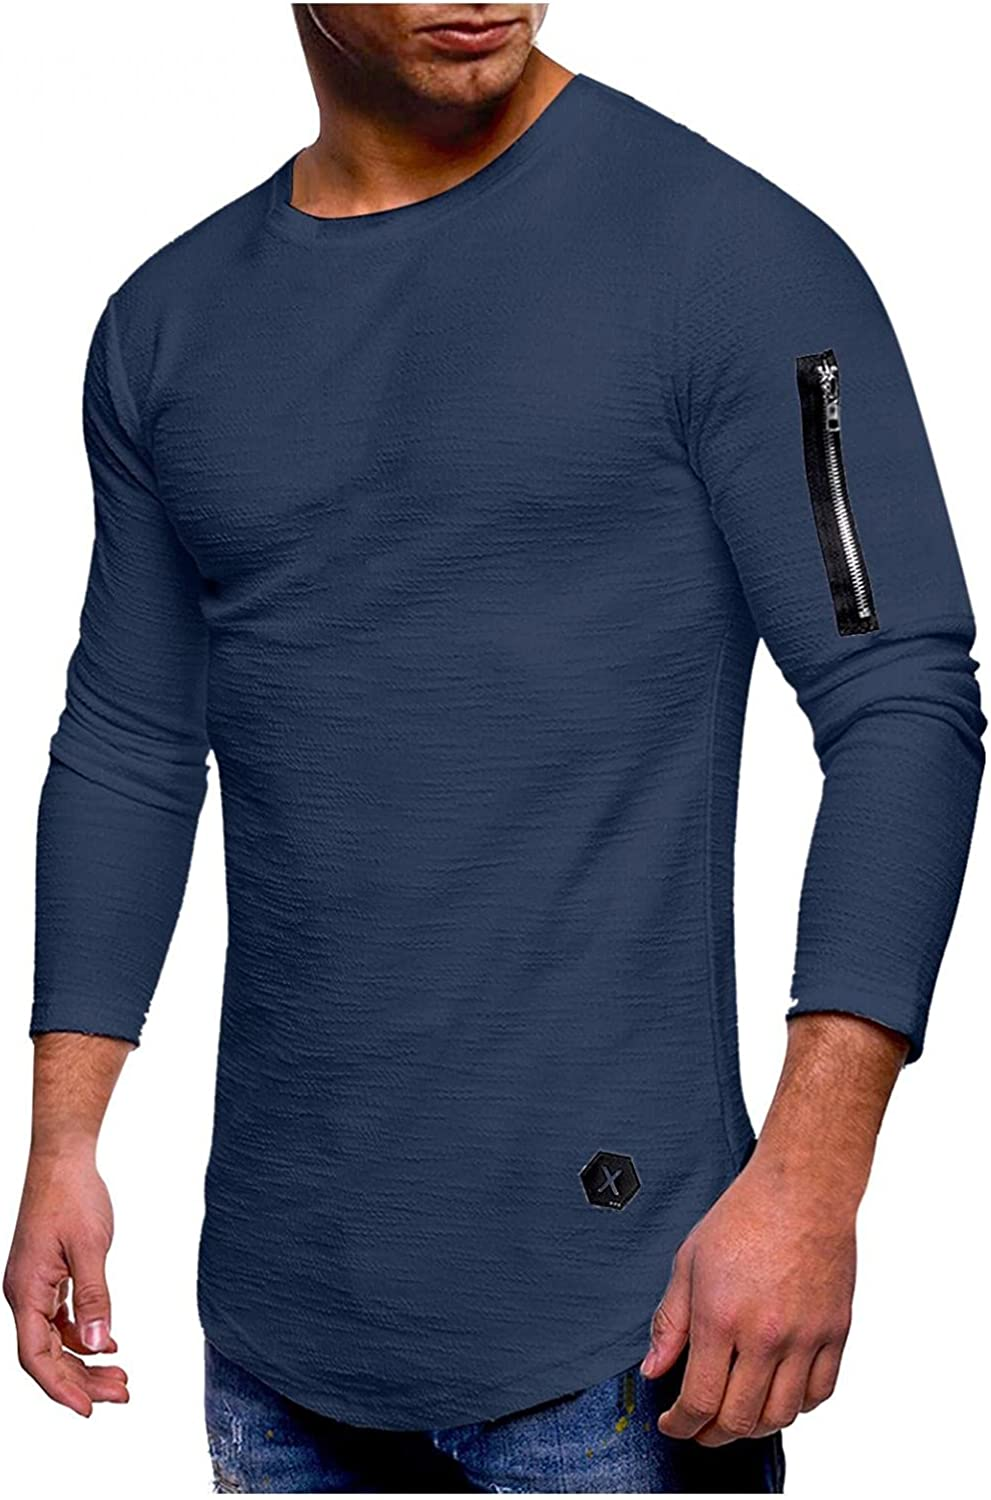 Burband Mens Regular Fit Long Sleeve Athletic Jersey Shirts Casual Lightweight Slim Fit Cotton Crew V Neck Muscle Tees